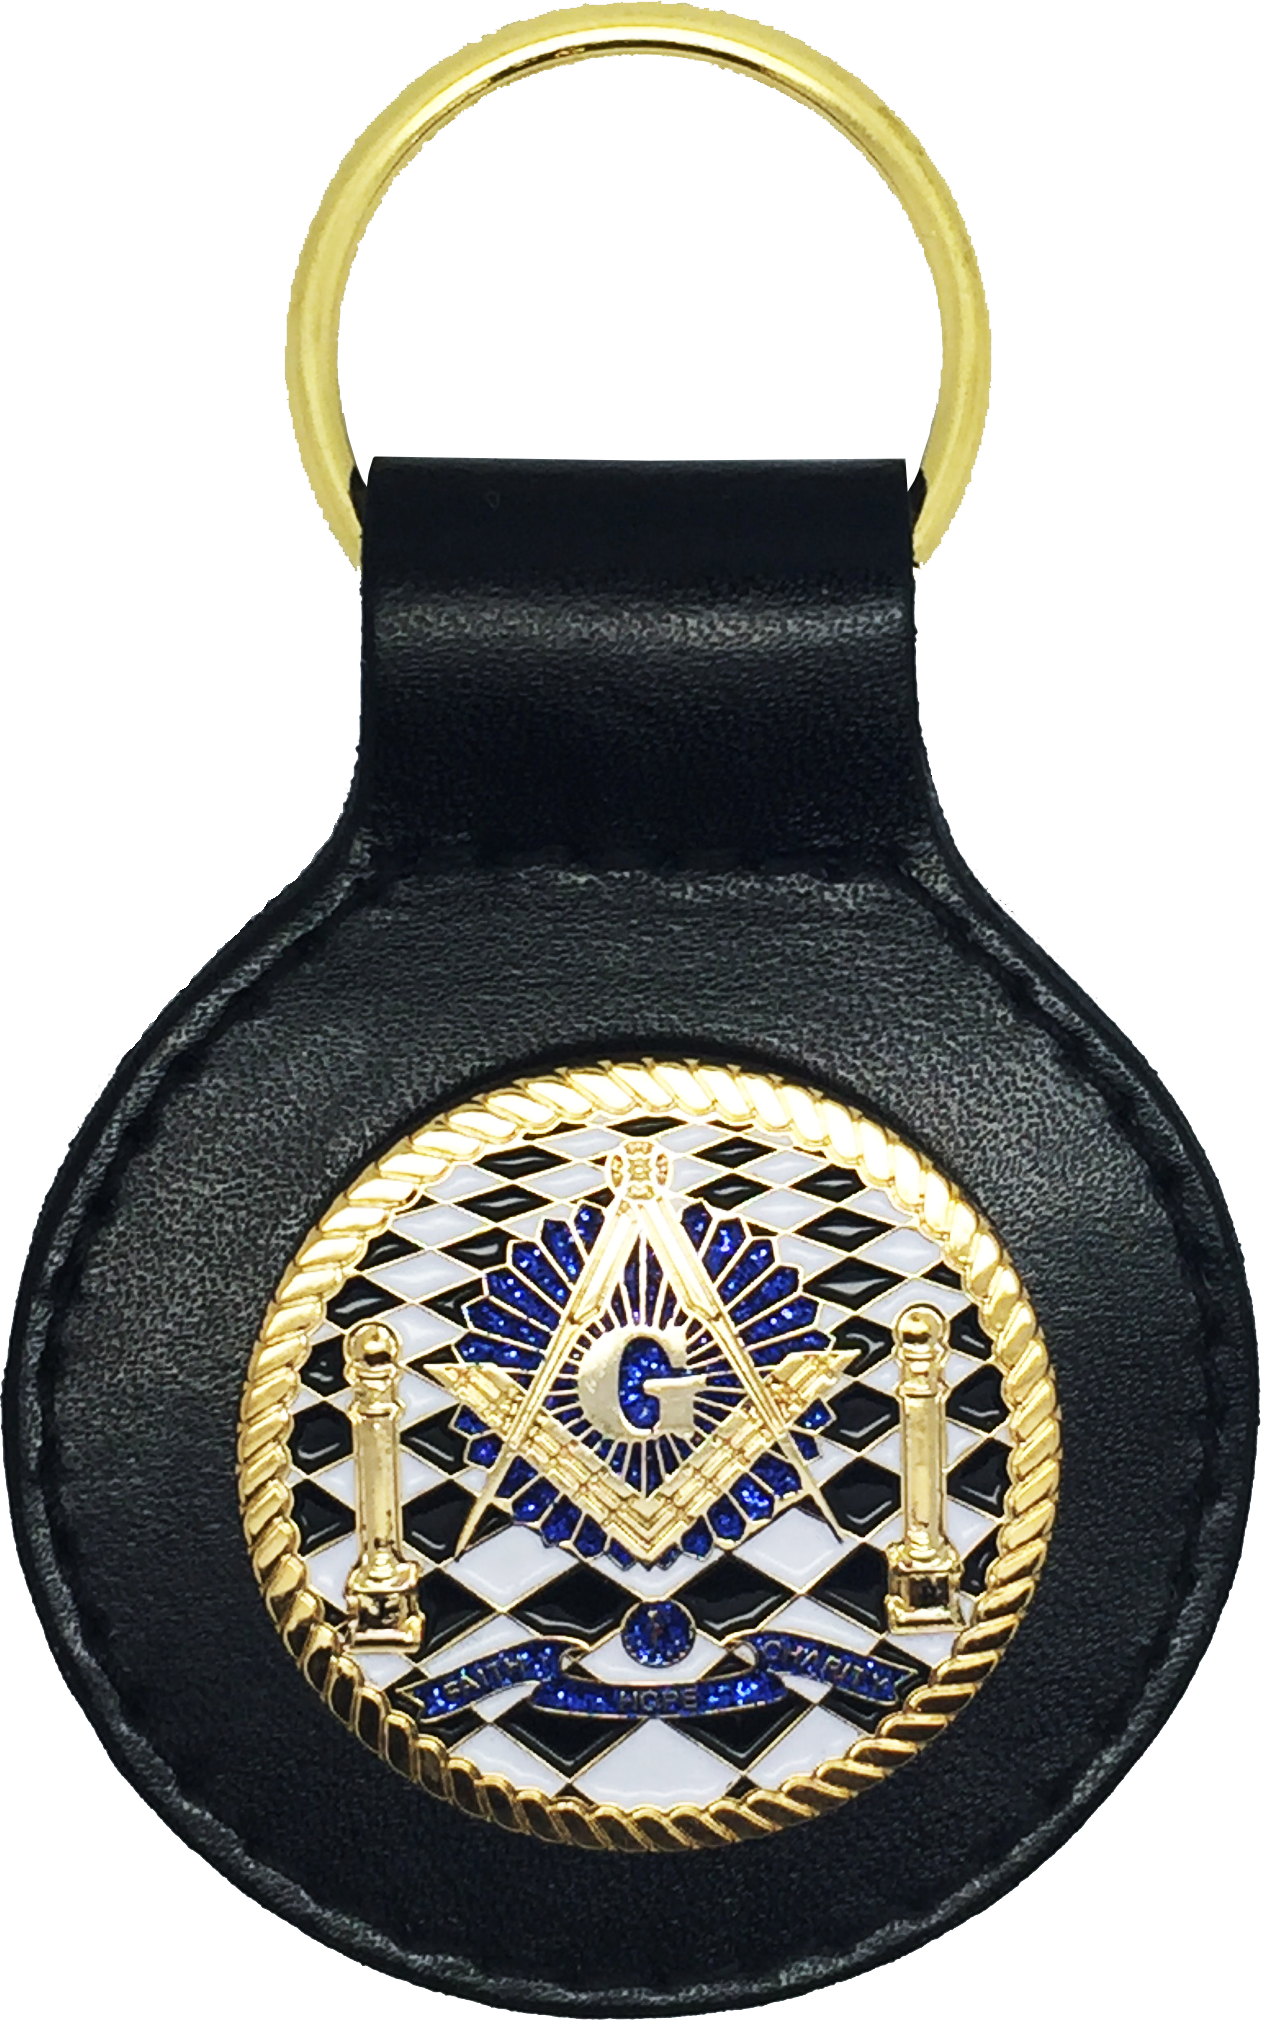 Mason Square and Compass Masonic Bottle Opener Key Fob Key Holder or Money Clip